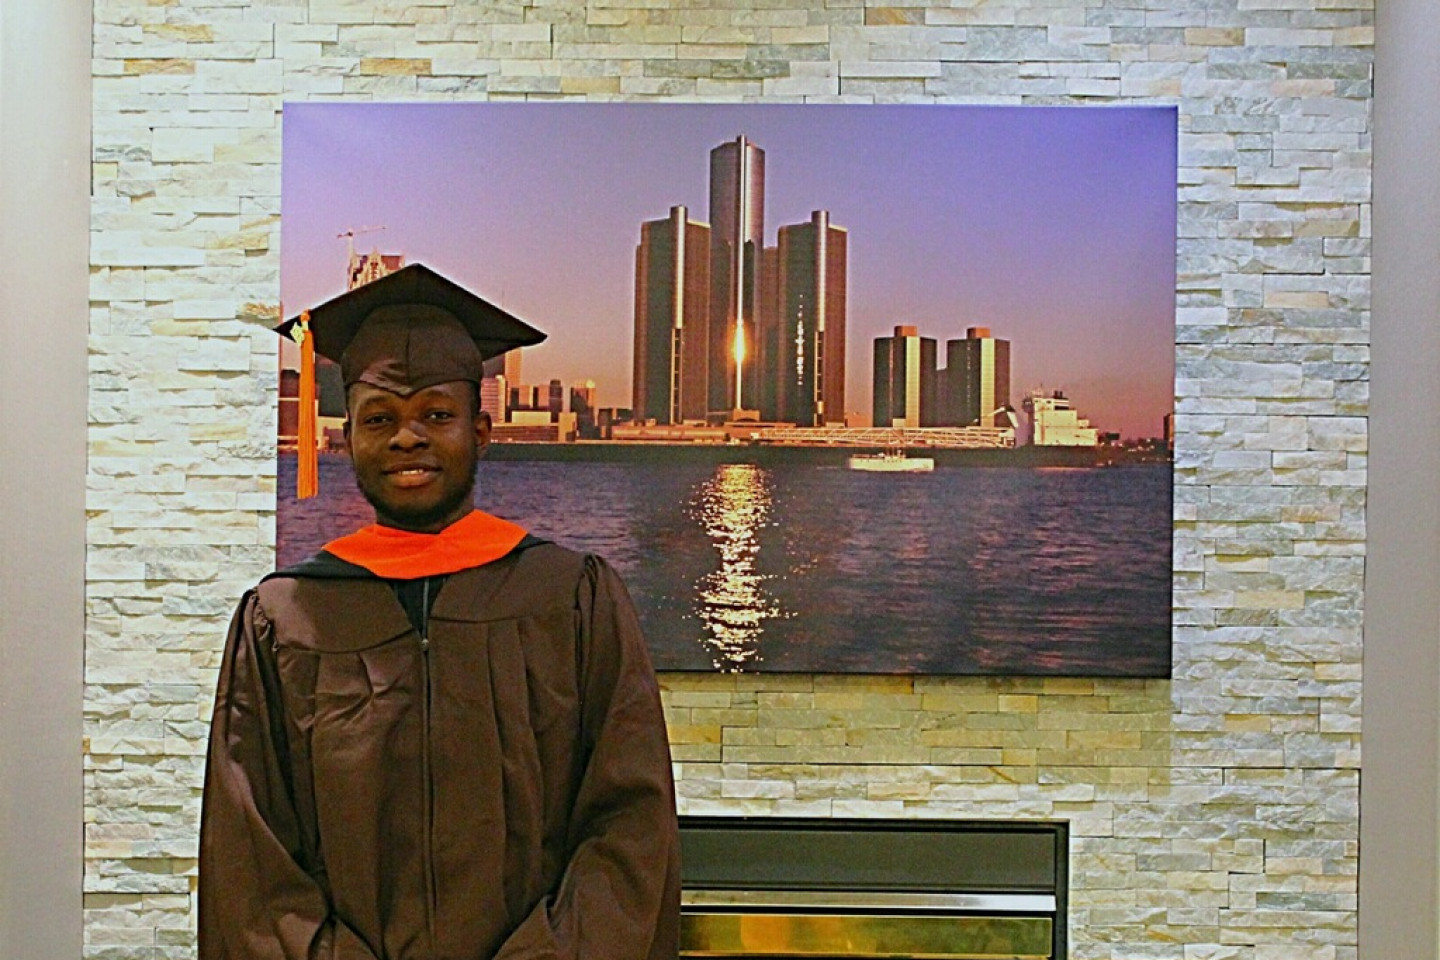 A photo of Ewaen Ediae in his cap and gown.